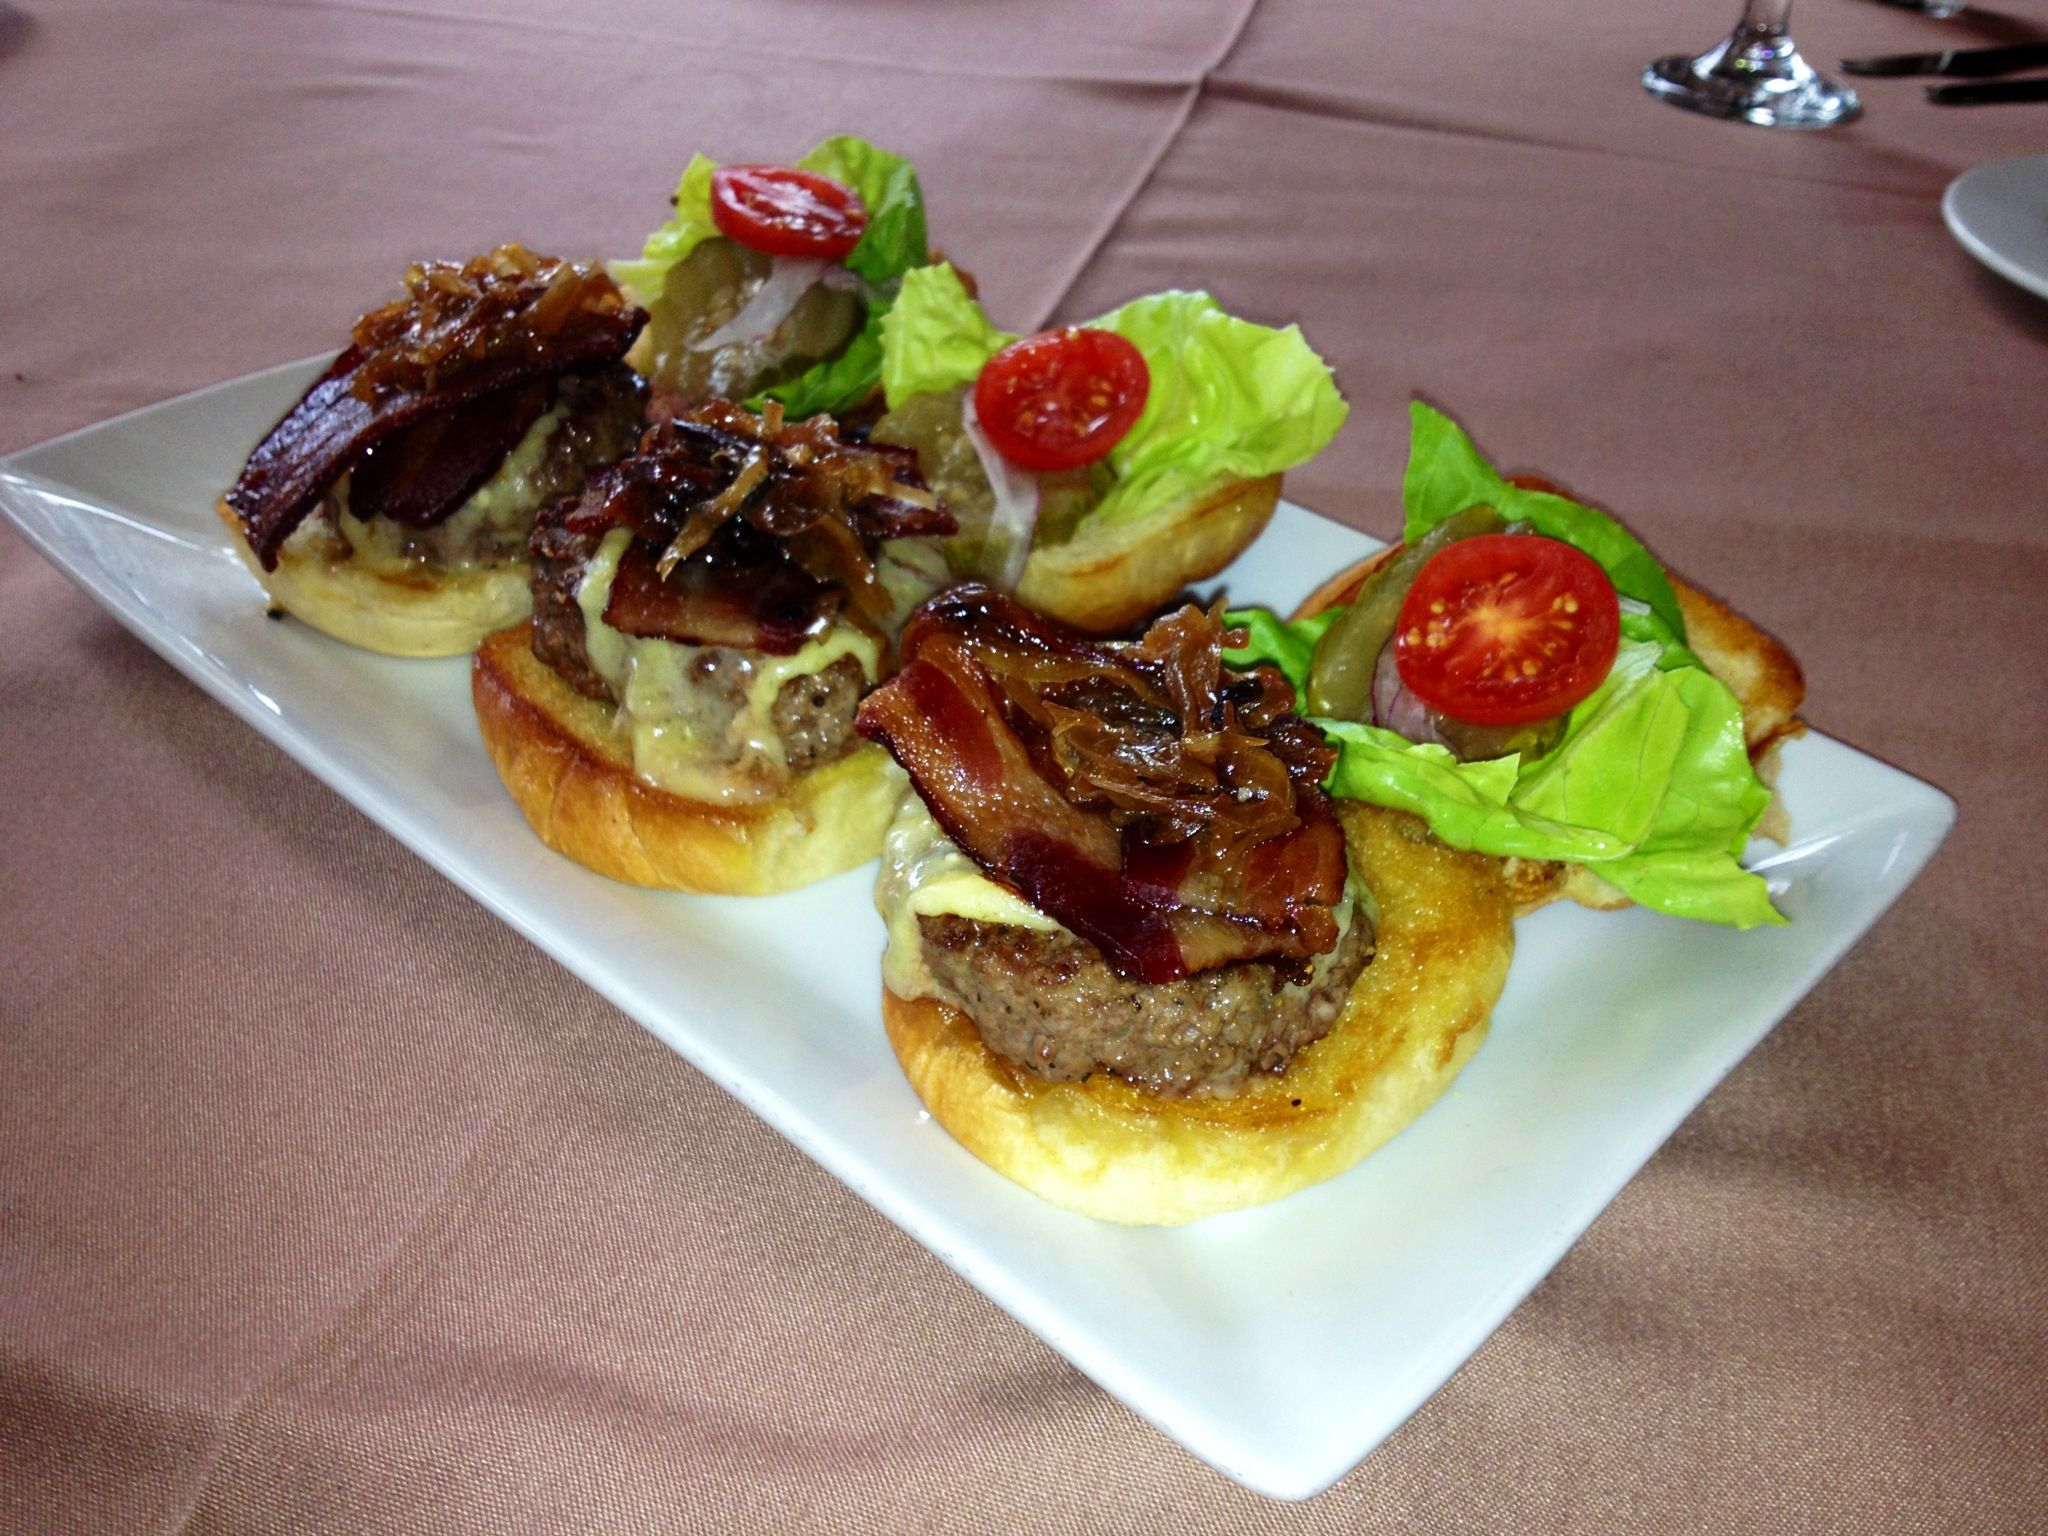 Beef Filet Sliders with Bacon, Cheese, Caramelized Shallots on Brioche Bun